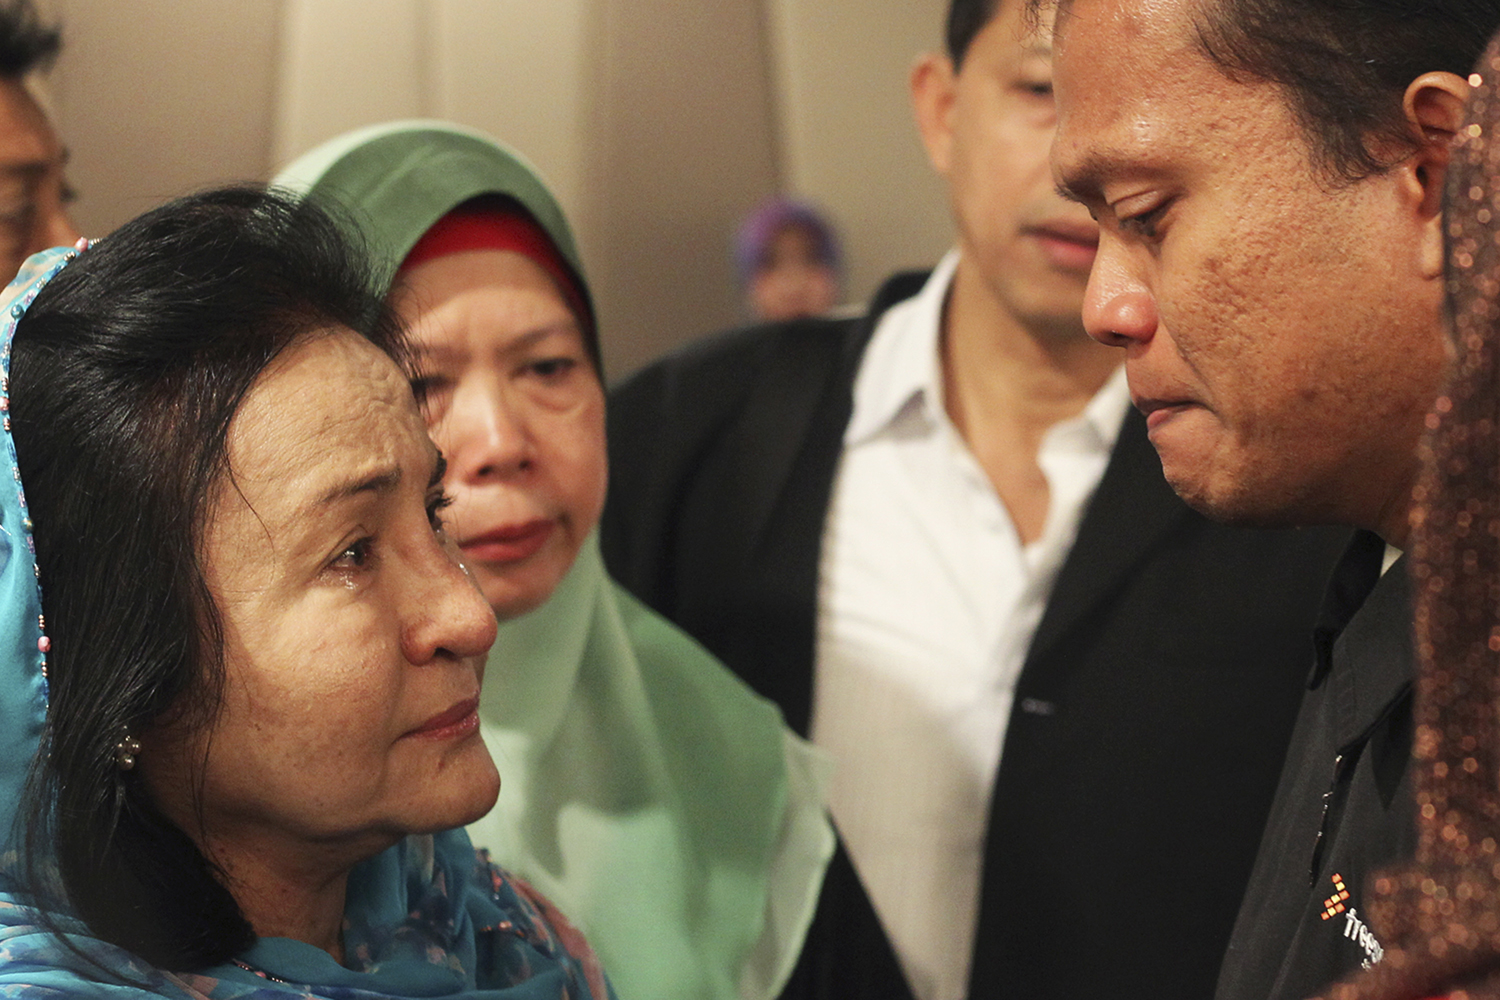 Rosmah Mansor, left, wife of Malaysian Prime Minister Najib Razak, cries with family members of passengers on the missing Malaysia Airlines flight MH370, at a hotel in Putrajaya March 9, 2014.